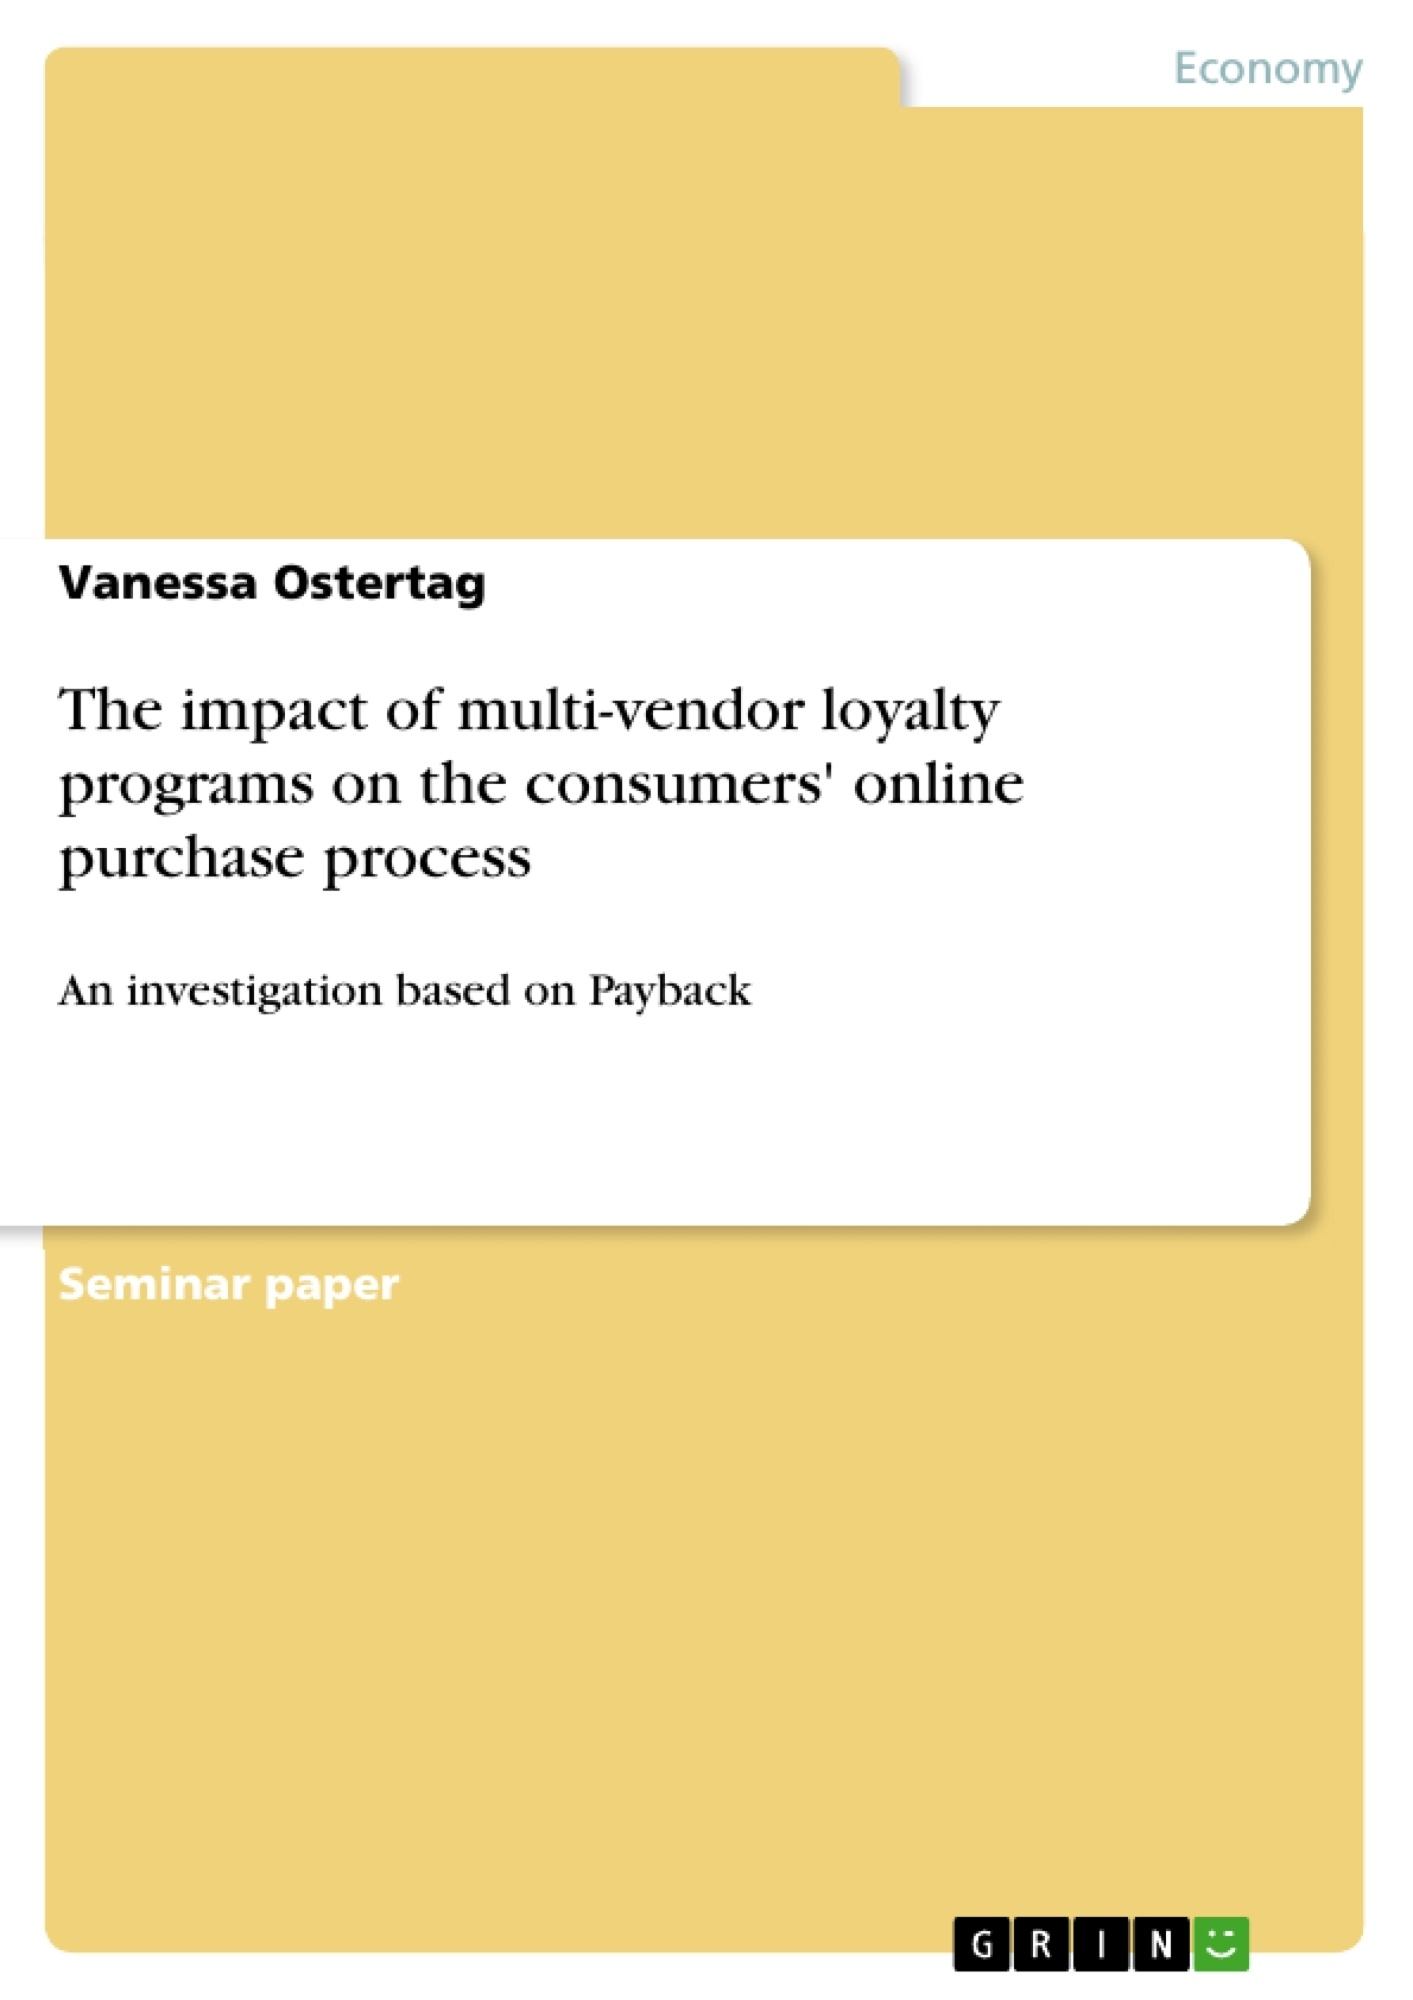 Title: The impact of multi-vendor loyalty programs on the consumers' online purchase process